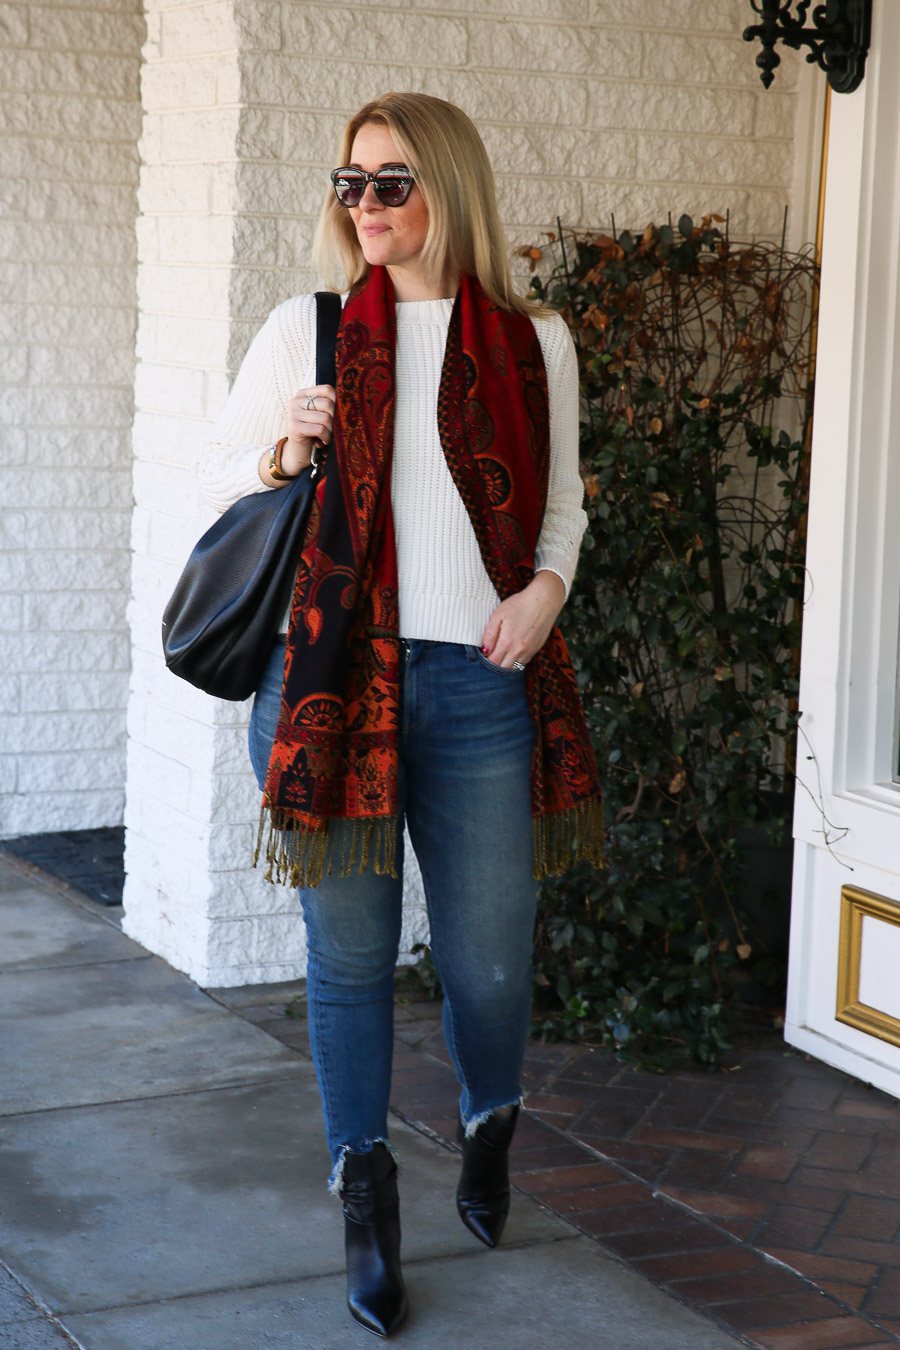 How to Wear Booties with Jeans - Heeled Booties